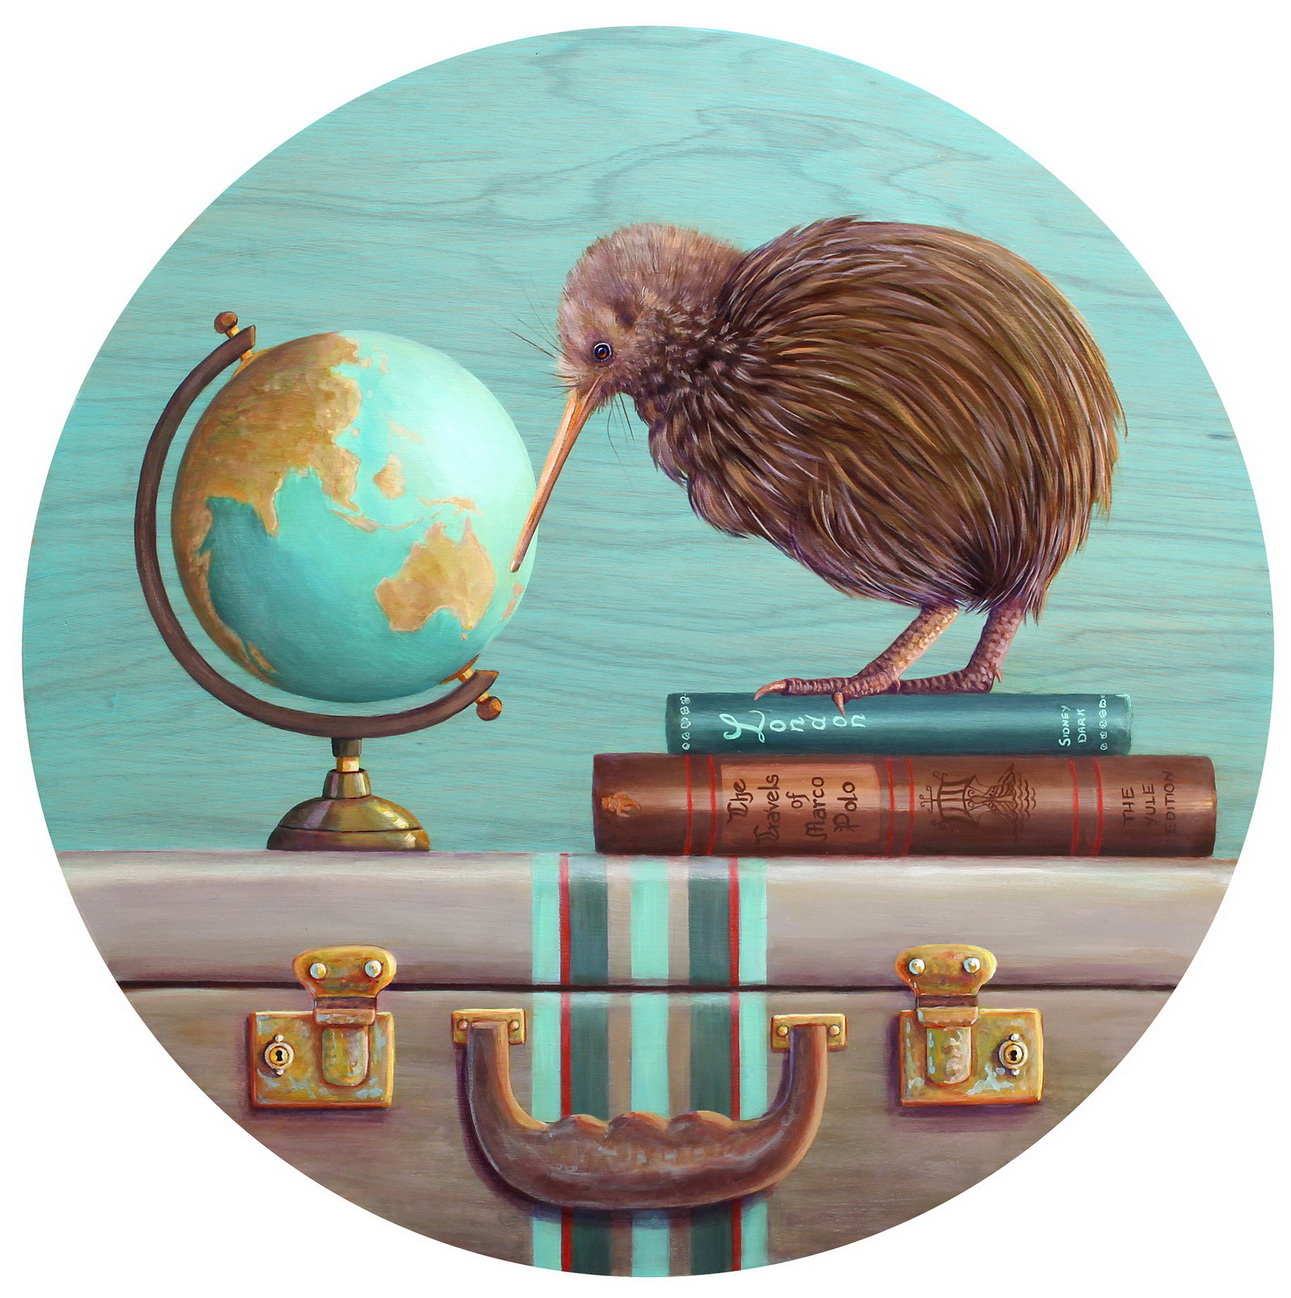 Kiwi...The Intrepid Traveller  600mm acrylic on plywood board 